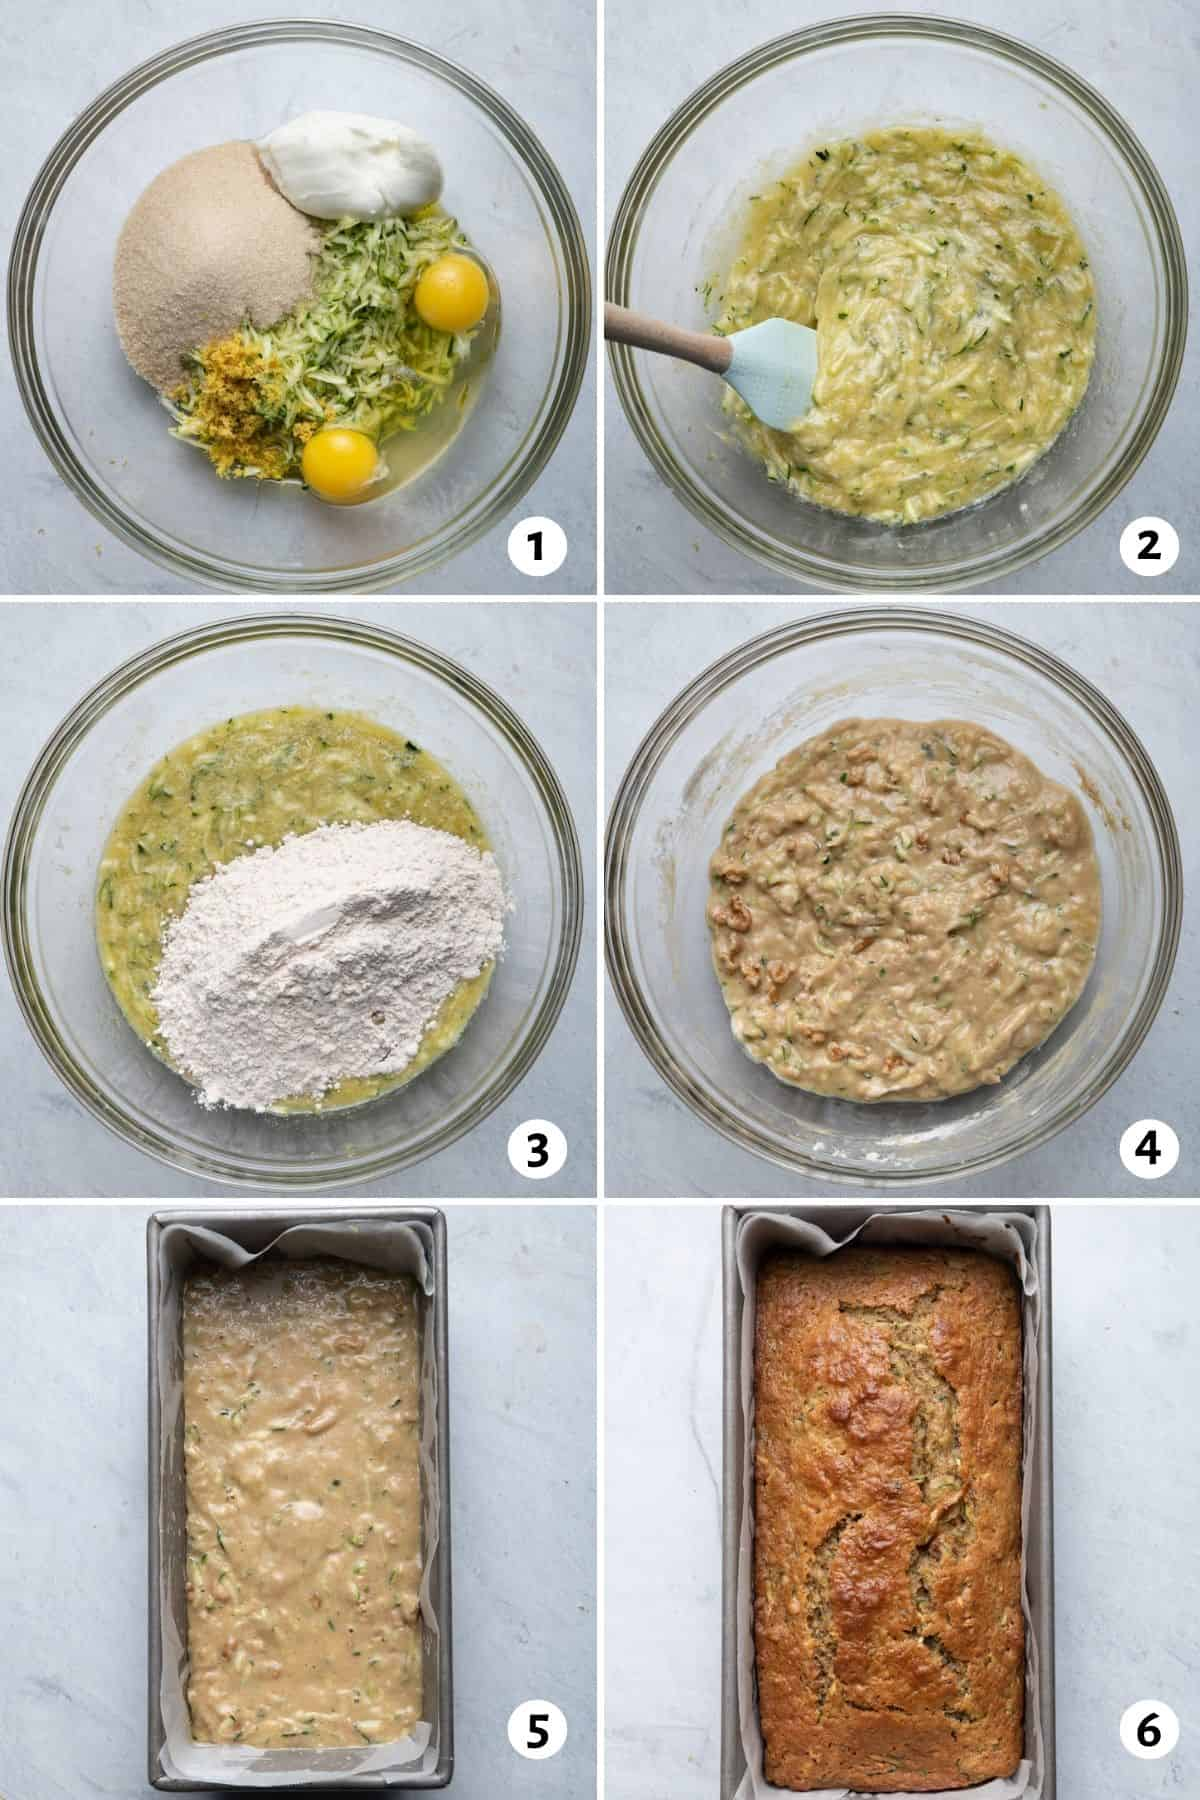 6 image collage to show how to mix the ingredients and then bake in the loaf pan